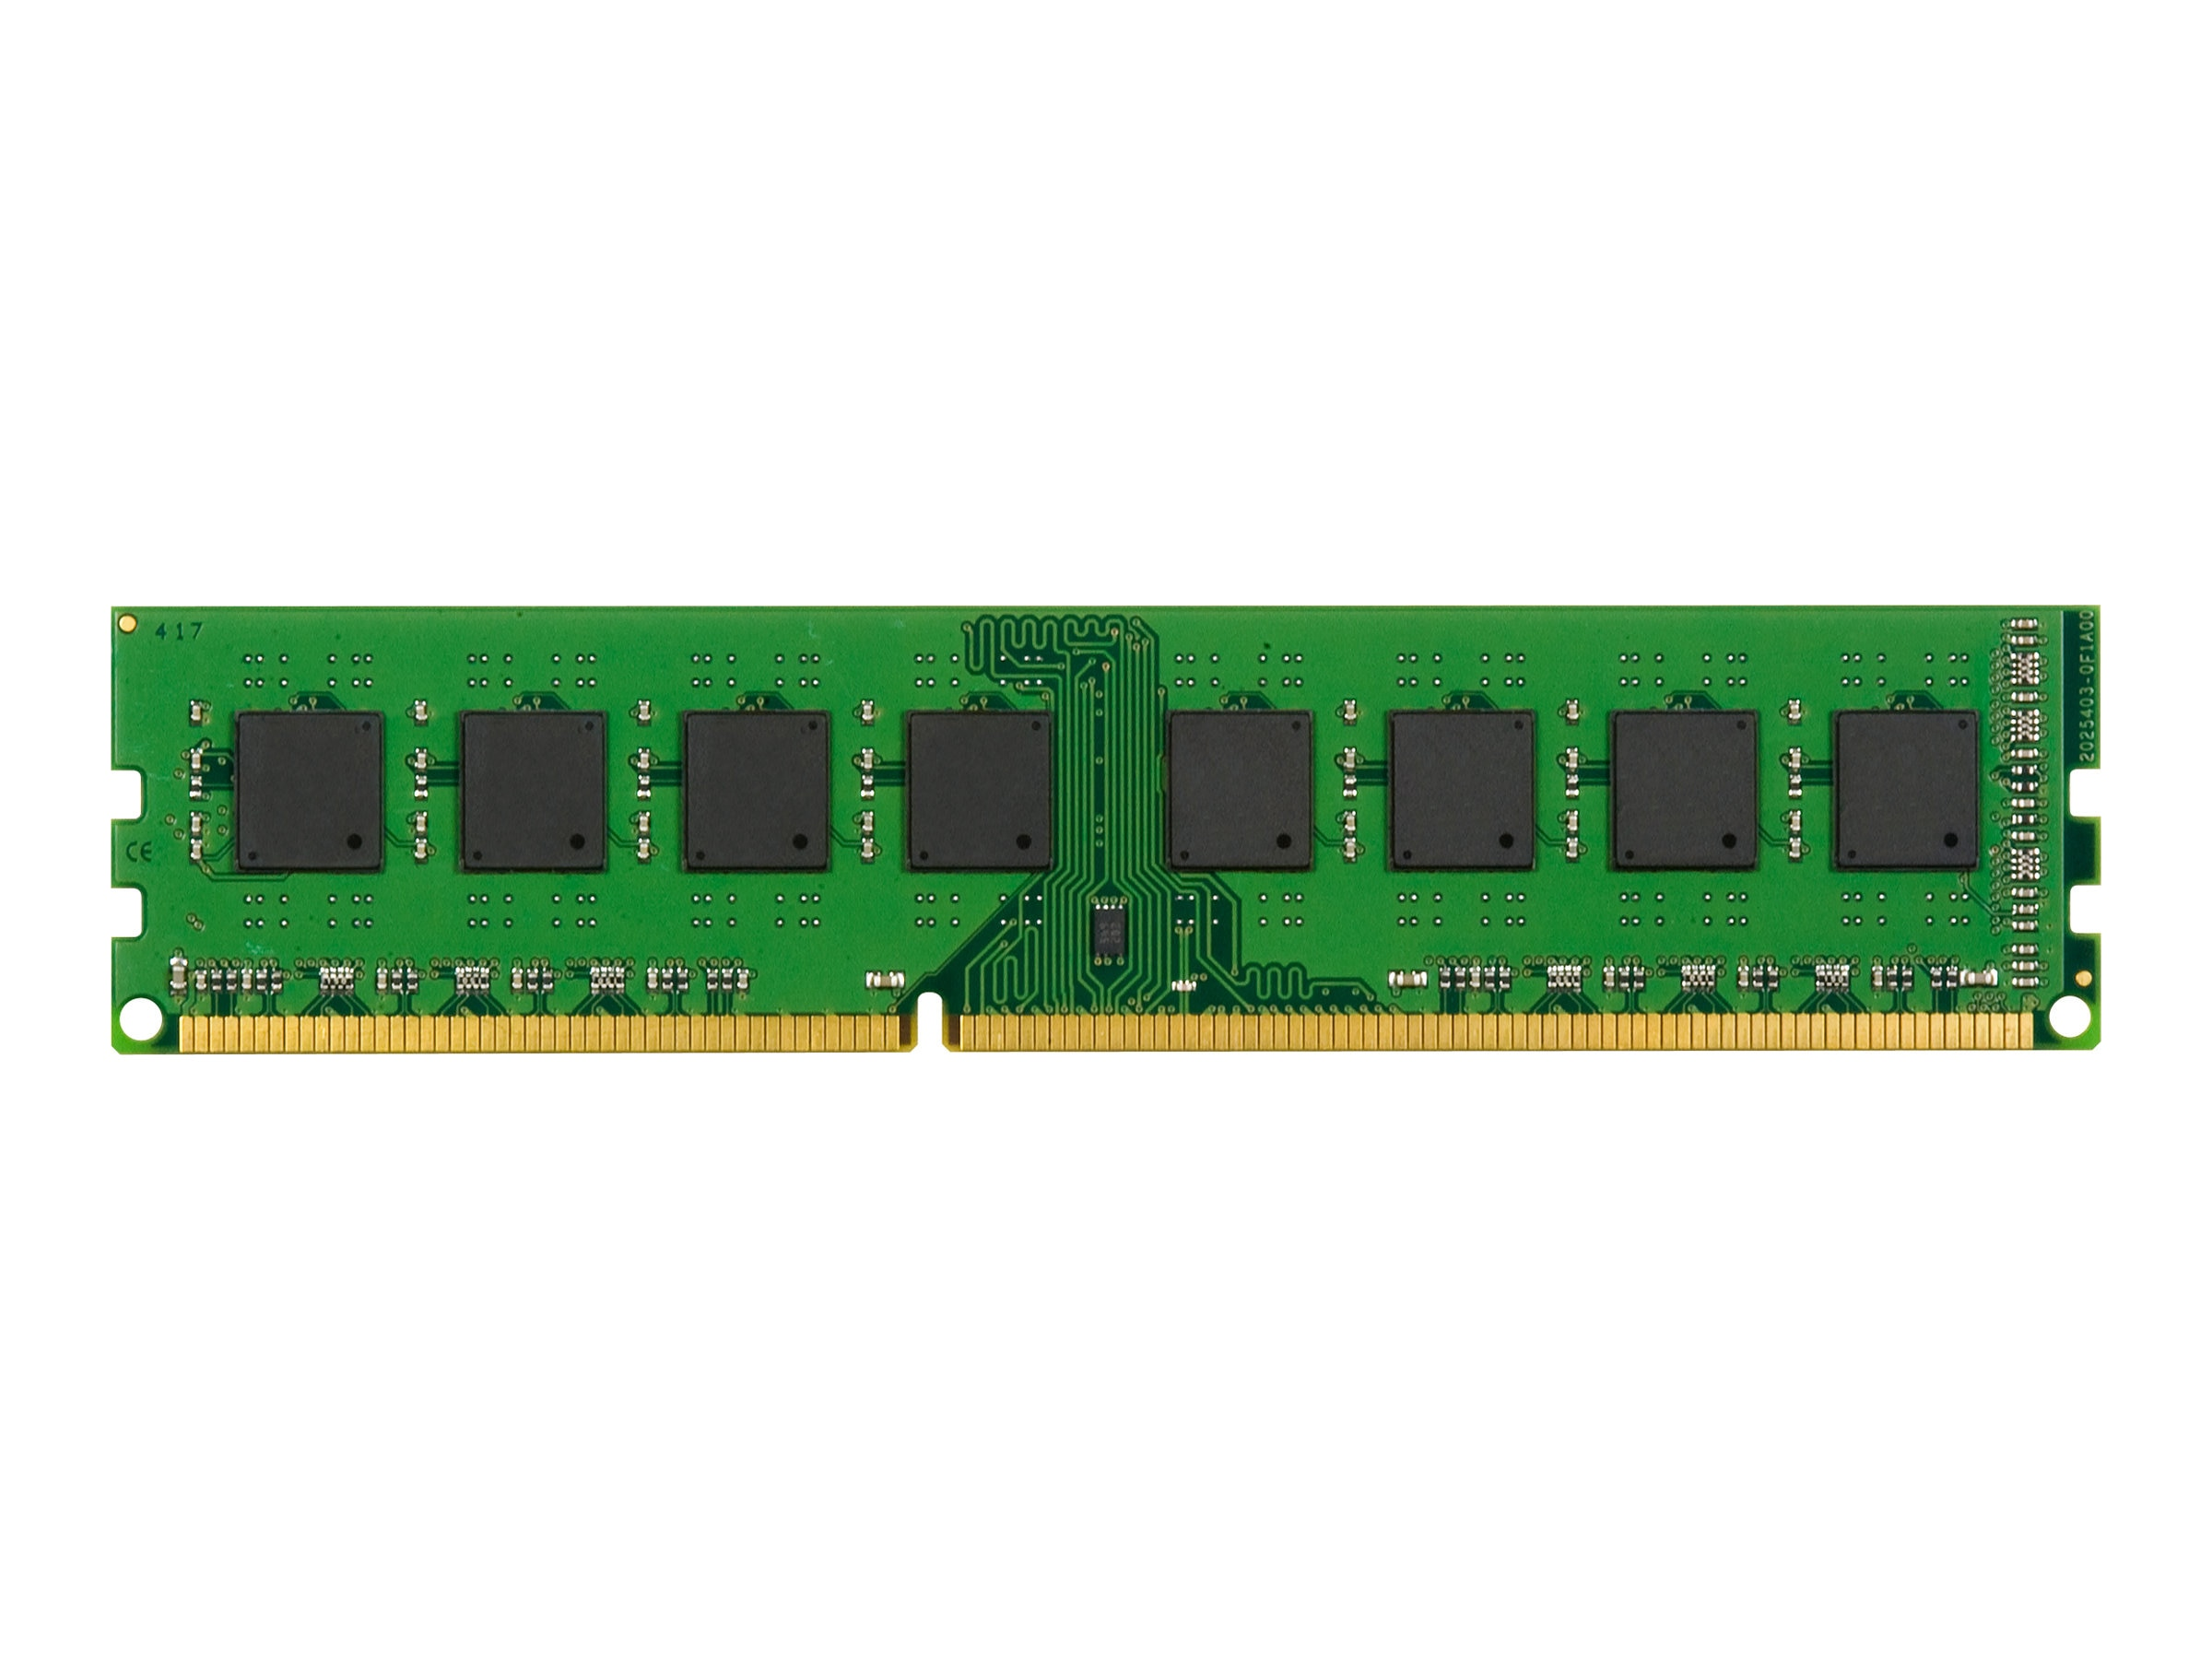 Kingston 8GB PC3-12800 240-pin DDR3 SDRAM UDIMM for Select Business Pro, Elite, Workstation Models, KTH9600C/8G, 14641781, Memory